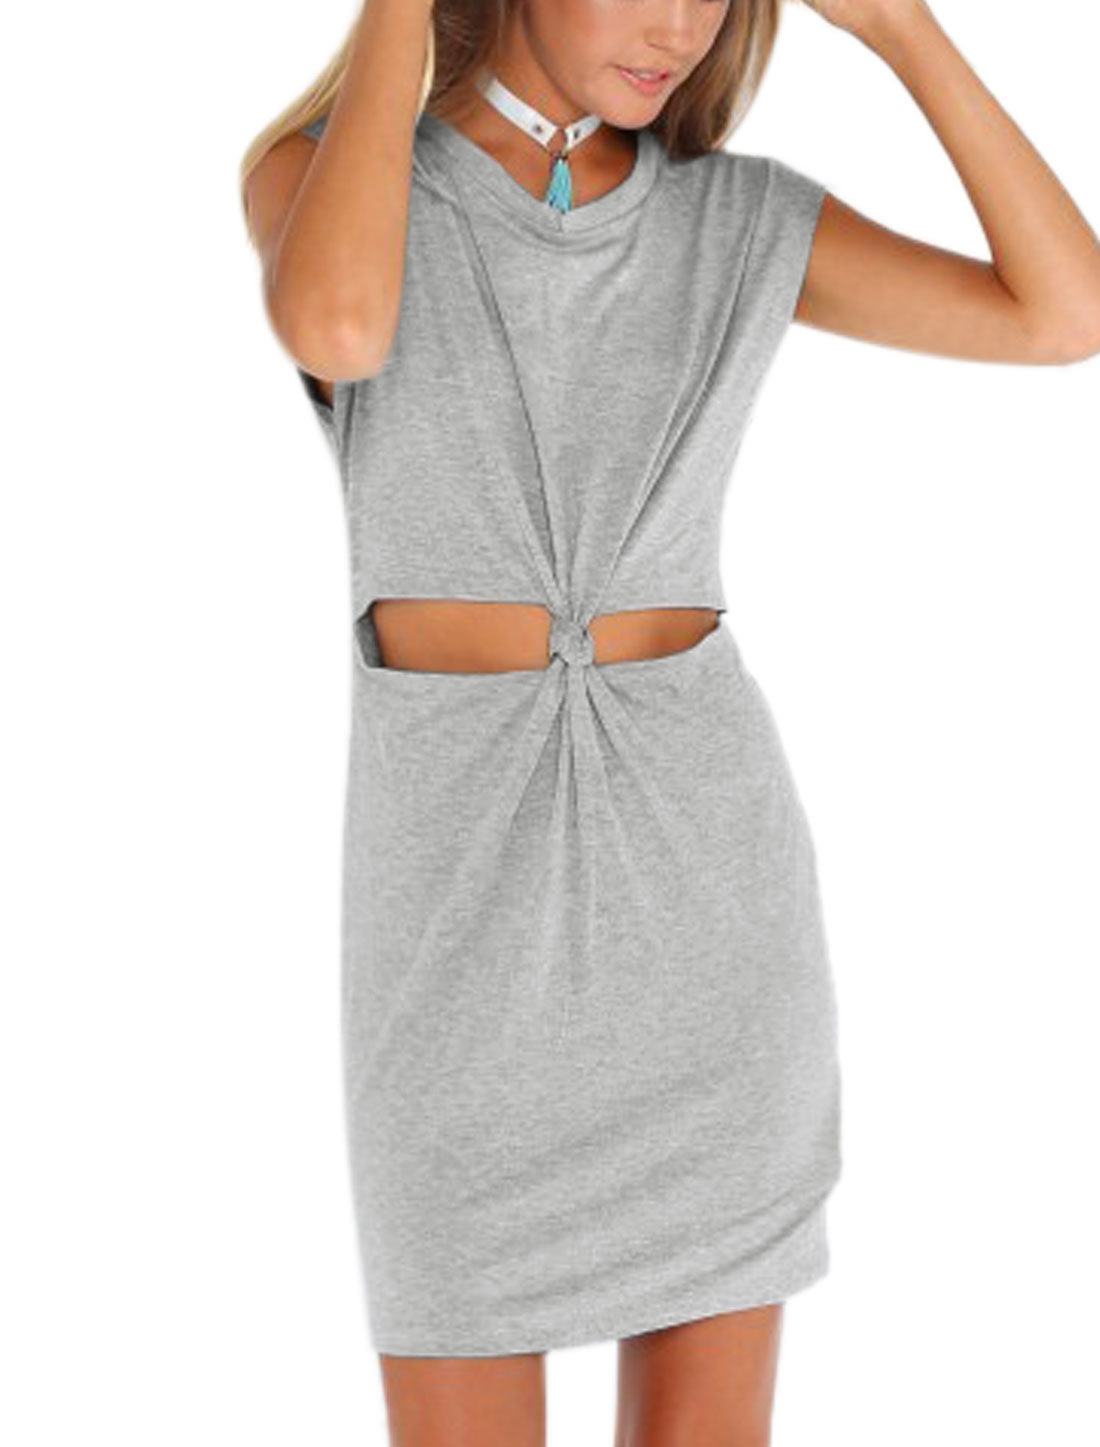 Ladies Sleeveless Round Neck Cut Out Front Dress Light Gray M